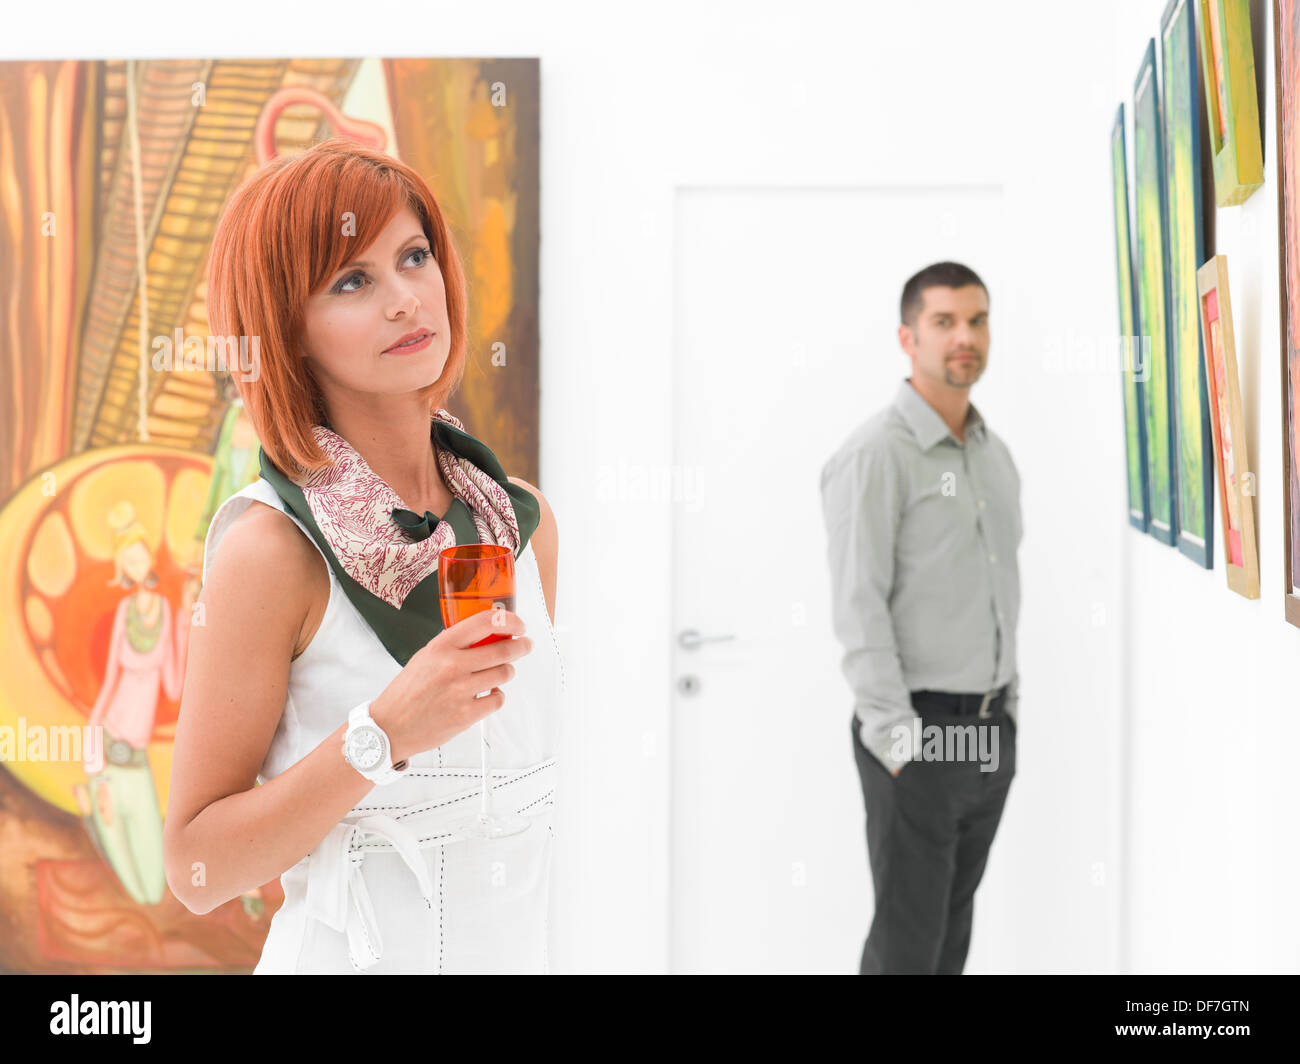 woman admiring painting in gallery stock photos & woman admiring